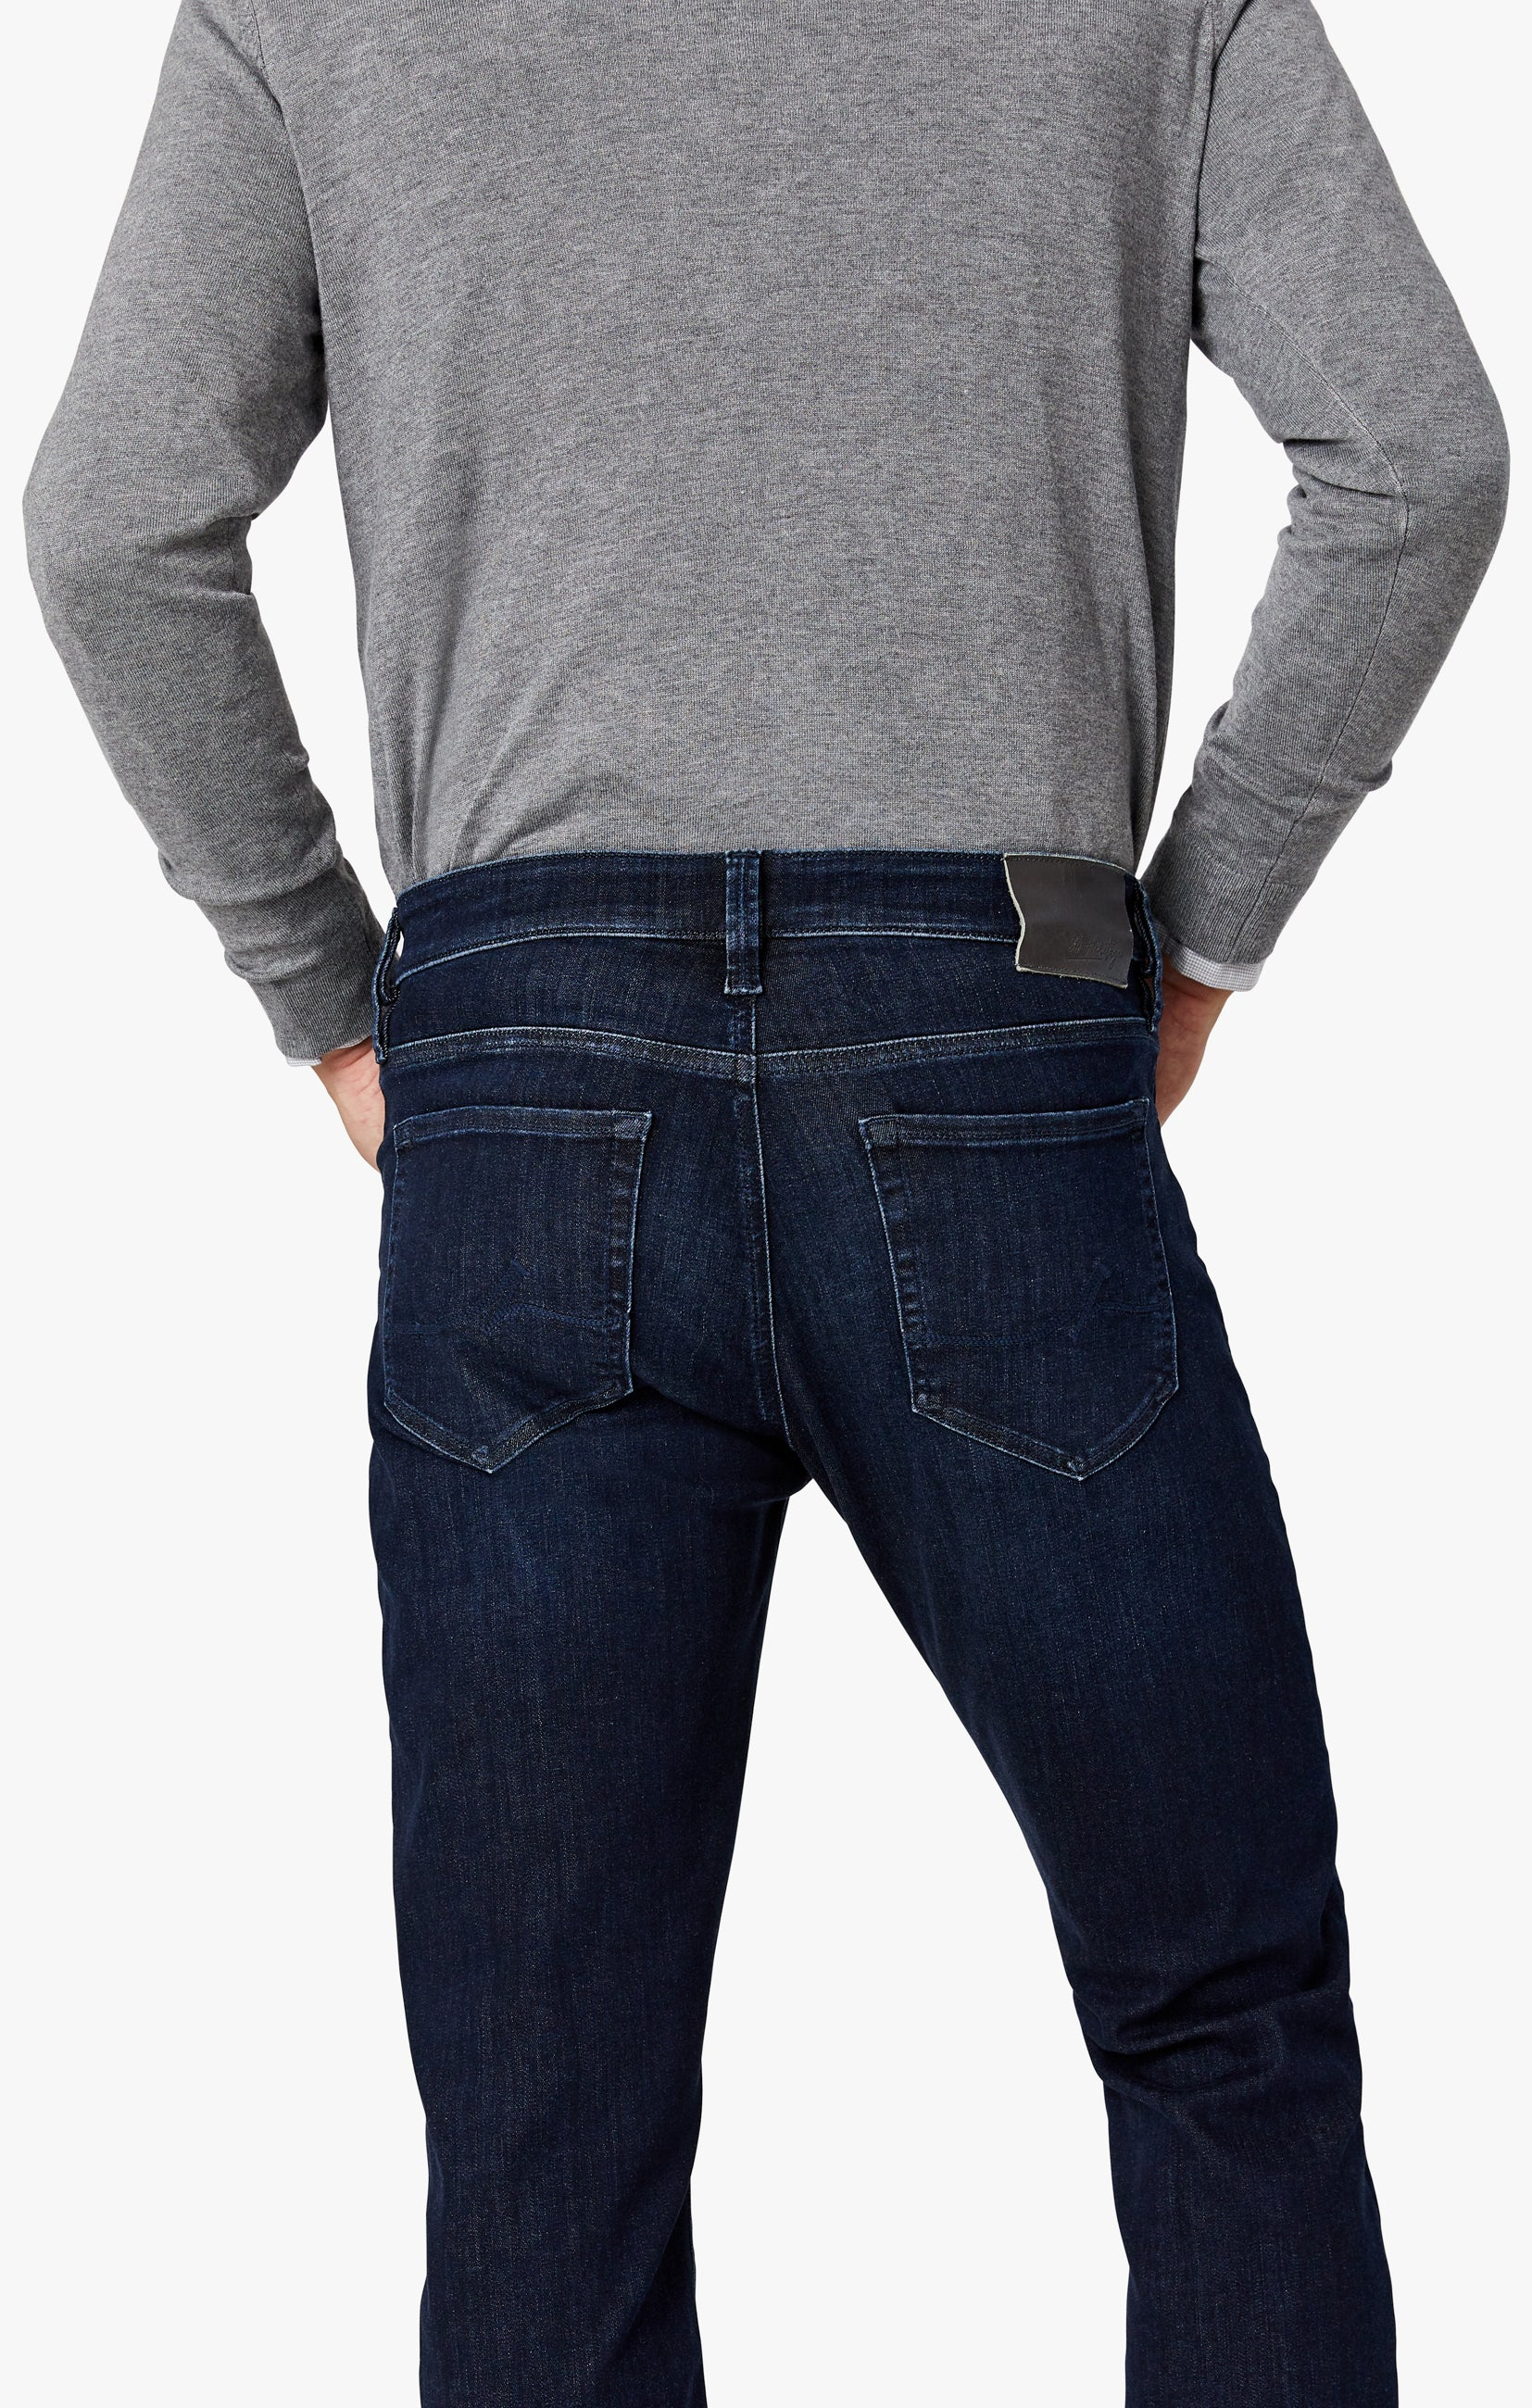 Charisma Relaxed Straight Jeans in Deep Urban Image 8